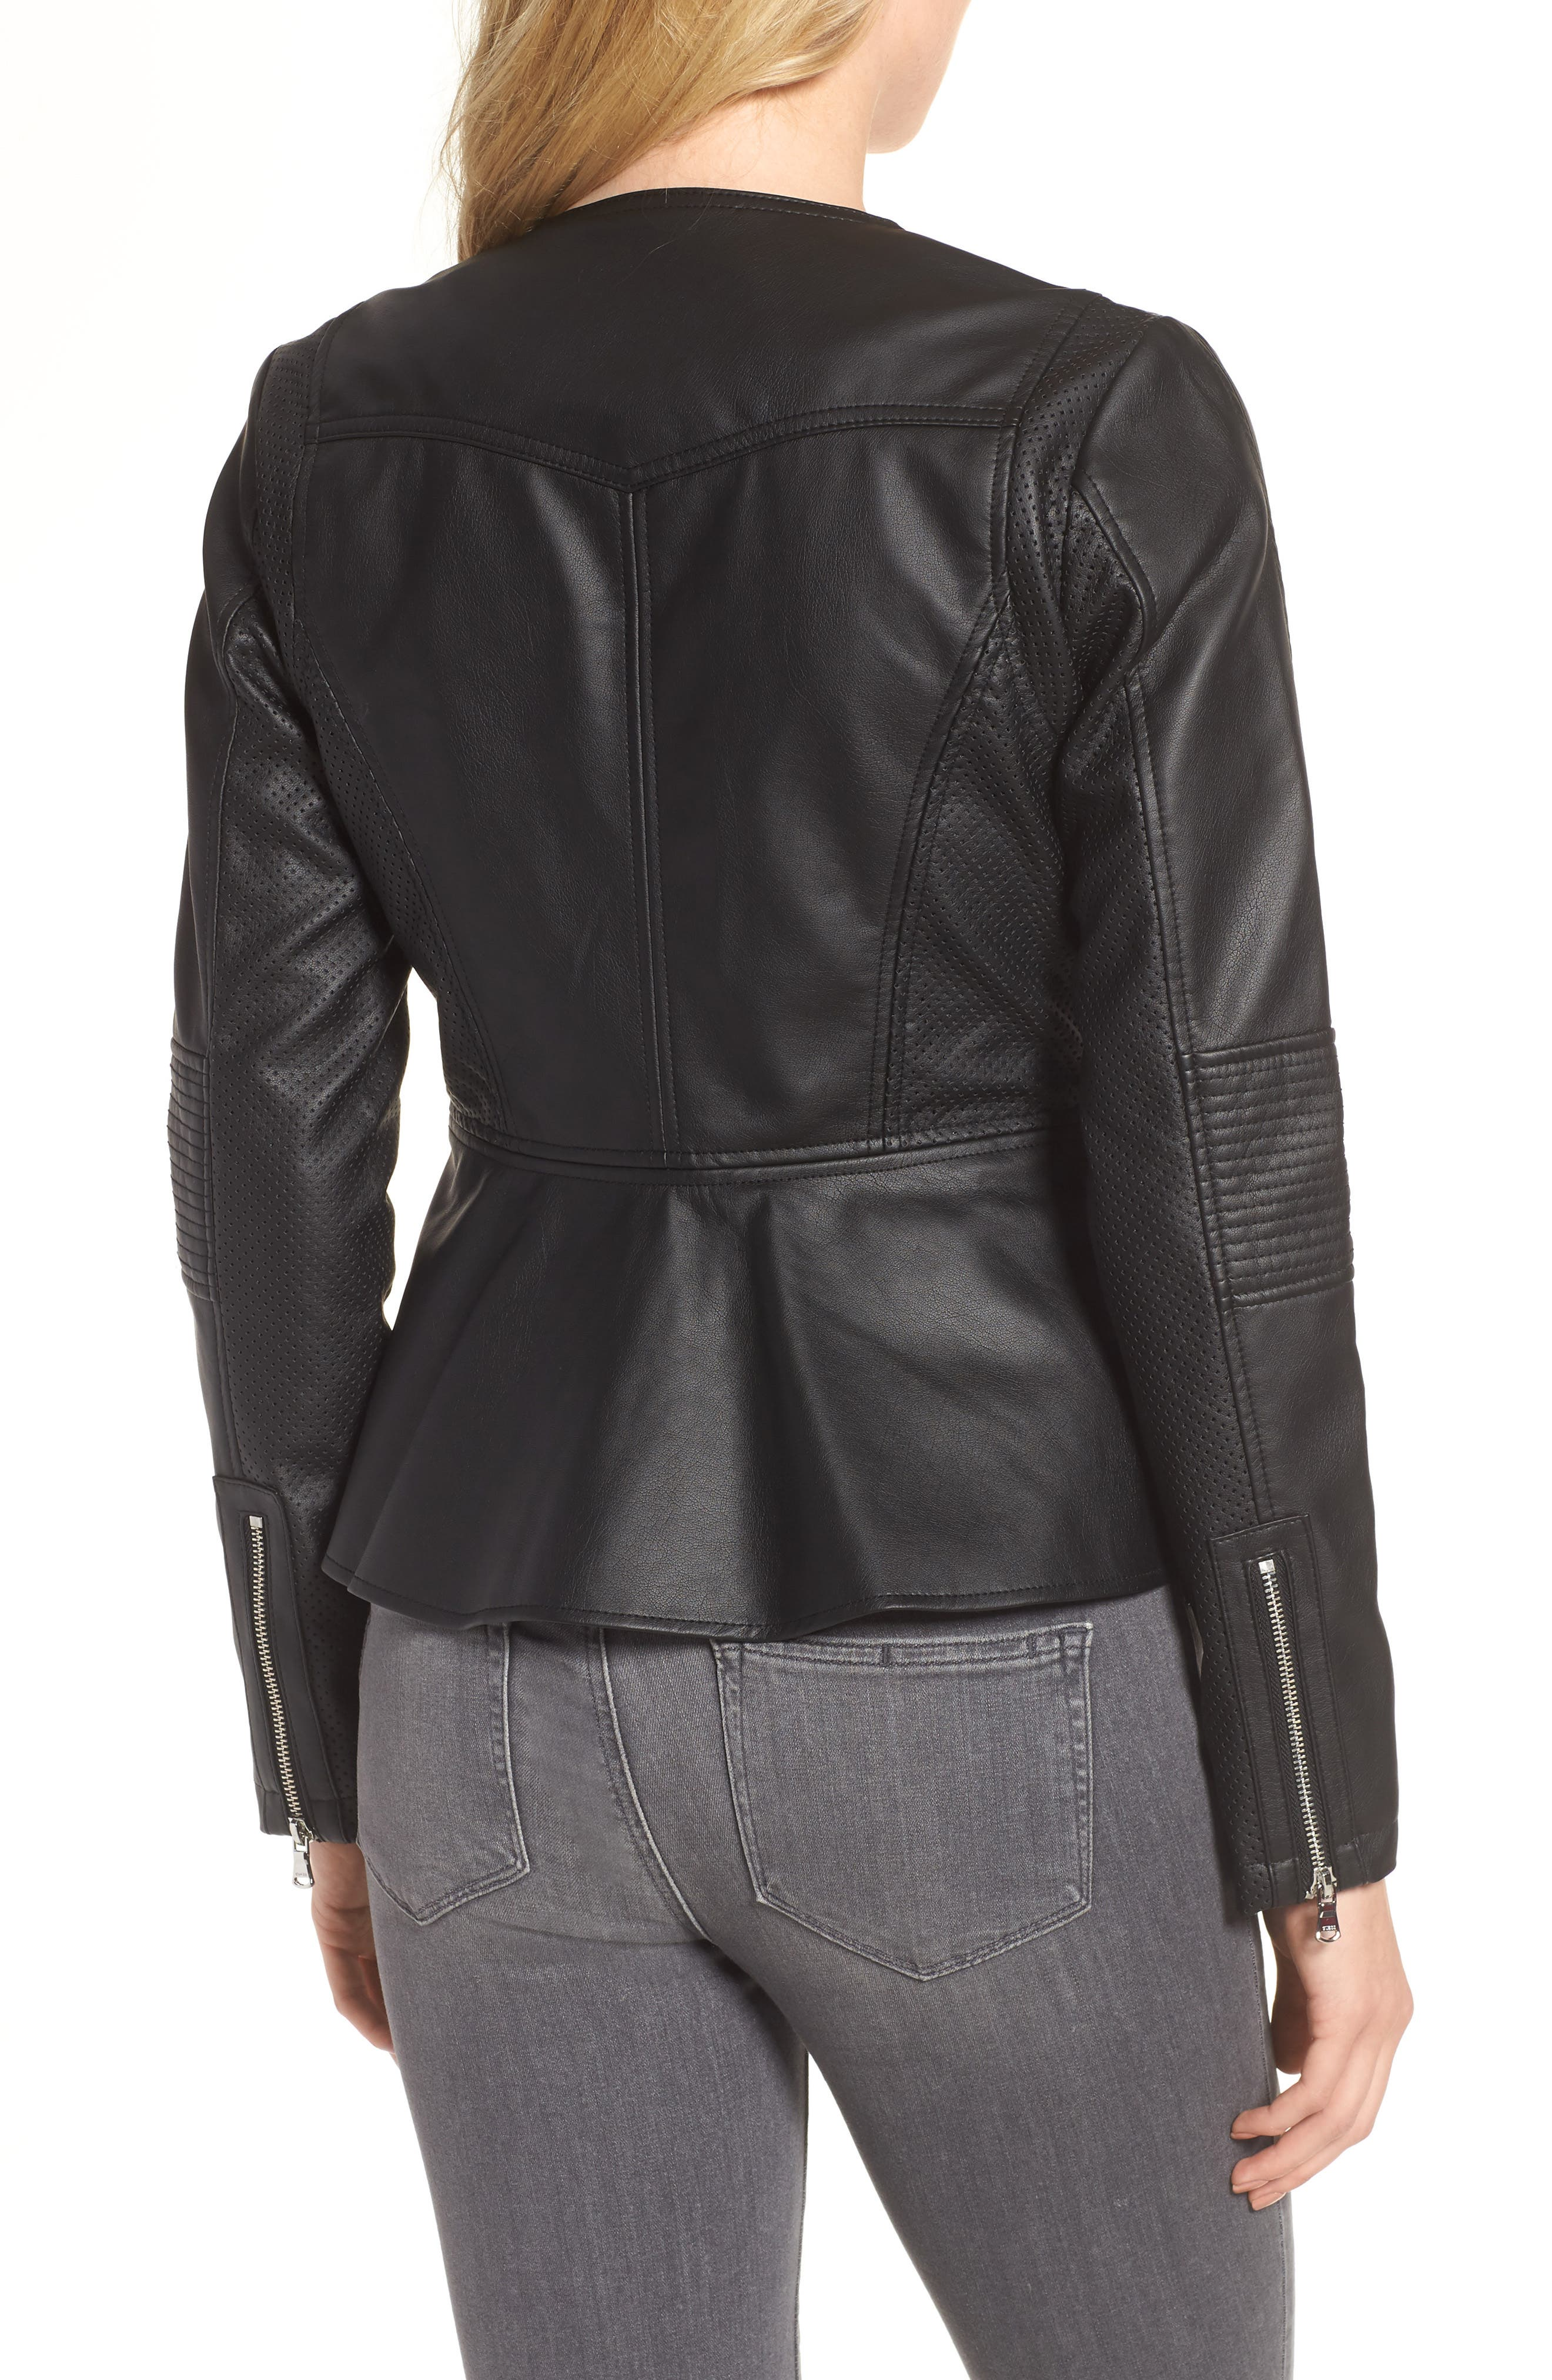 Perforated Peplum Hem Faux Leather Jacket,                             Alternate thumbnail 2, color,                             001